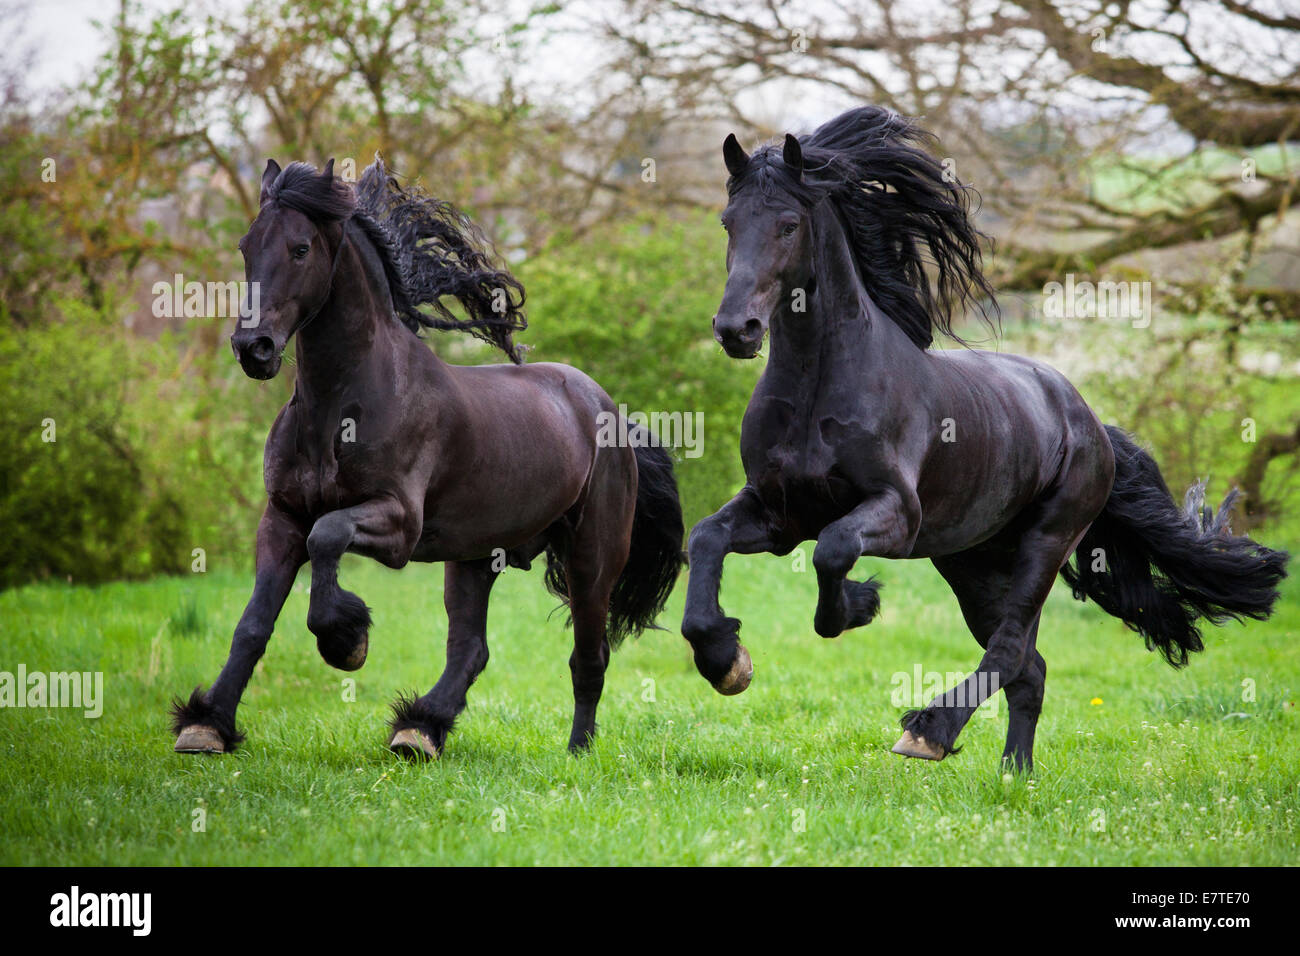 Friesian or Frisian horses, stallions, running free on a meadow, galloping - Stock Image